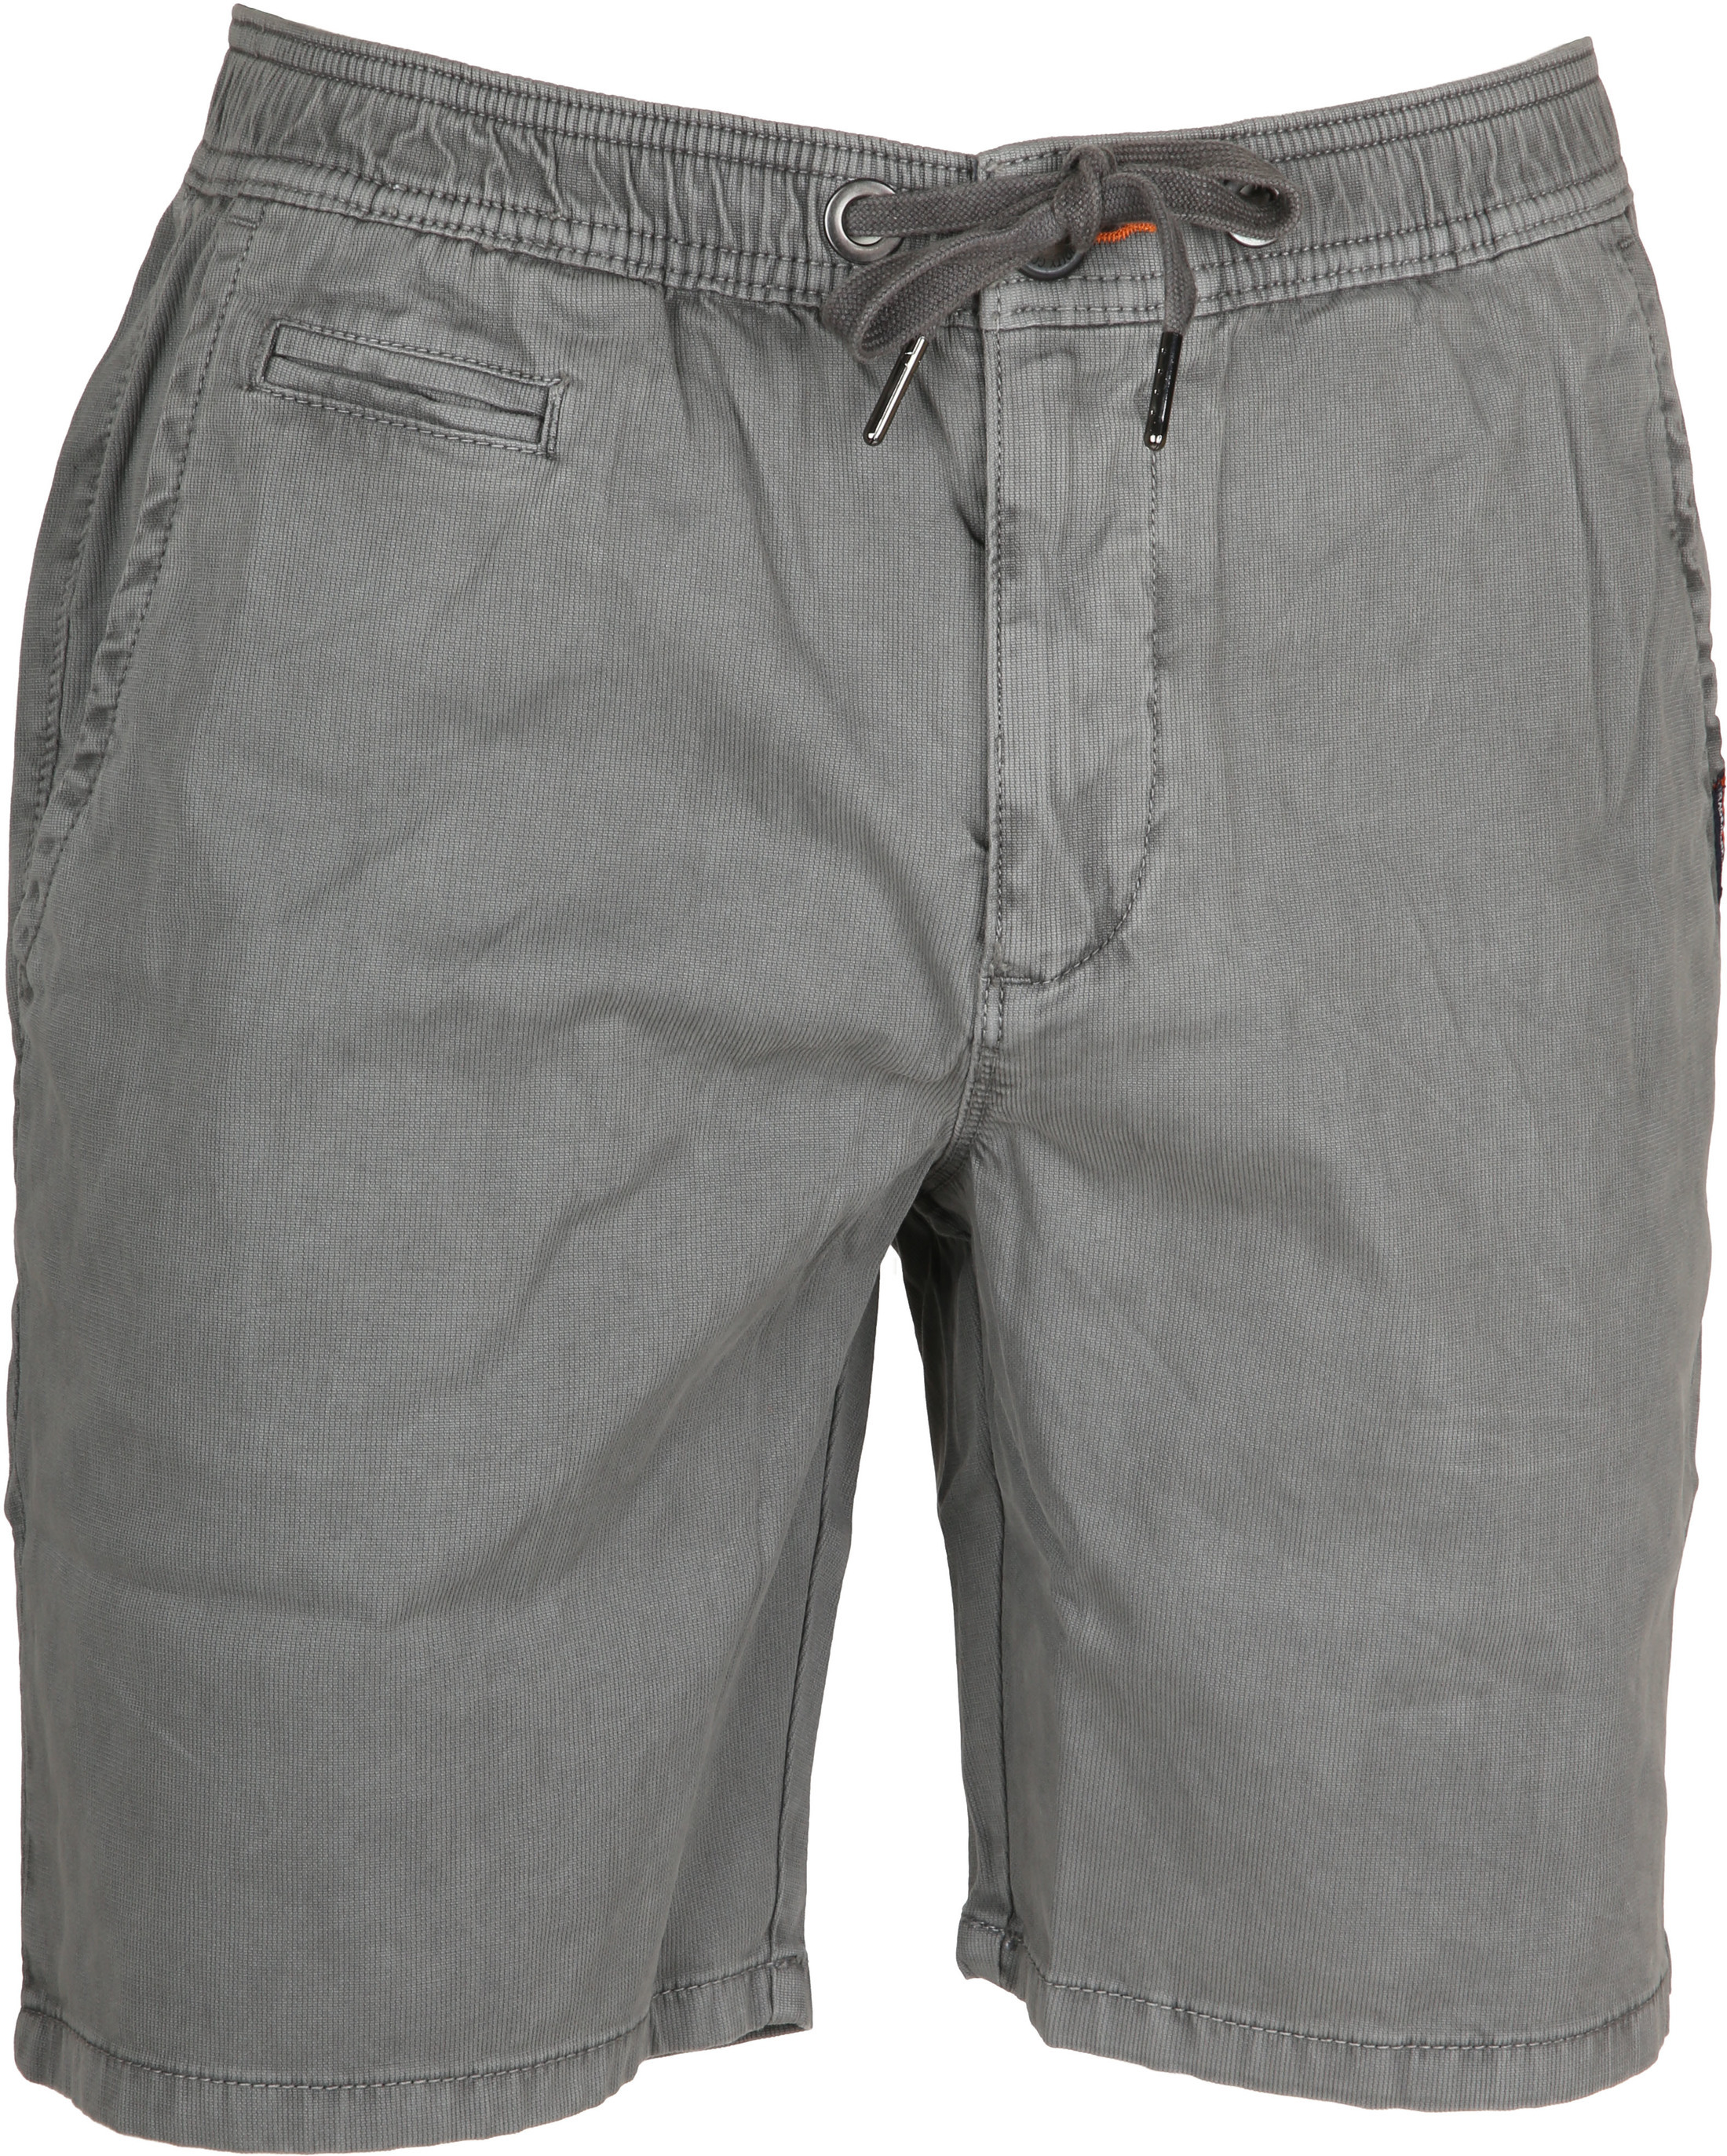 Superdry Sunscorched Short Grey foto 0